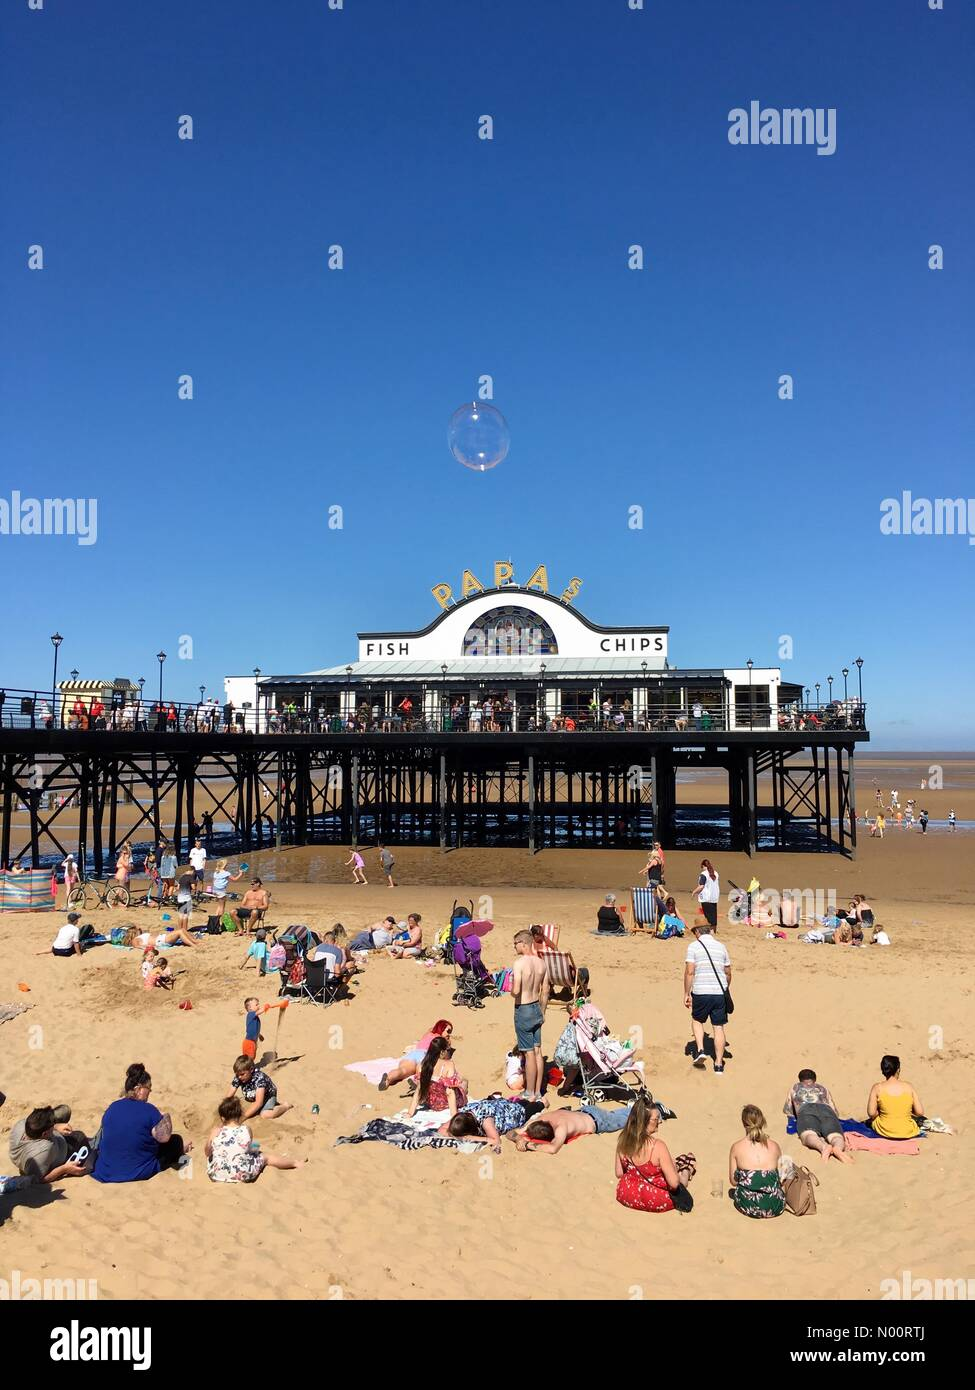 Cleethorpes, UK, 30 June 2018.  Tourists enjoying the beautiful weather at Cleethorpes beach by the pier during the armed forces event, a lone bubble floats by. Cleethorpes N.E Lincolnshire, England UK Credit: narrative22/StockimoNews/Alamy Live News - Stock Image